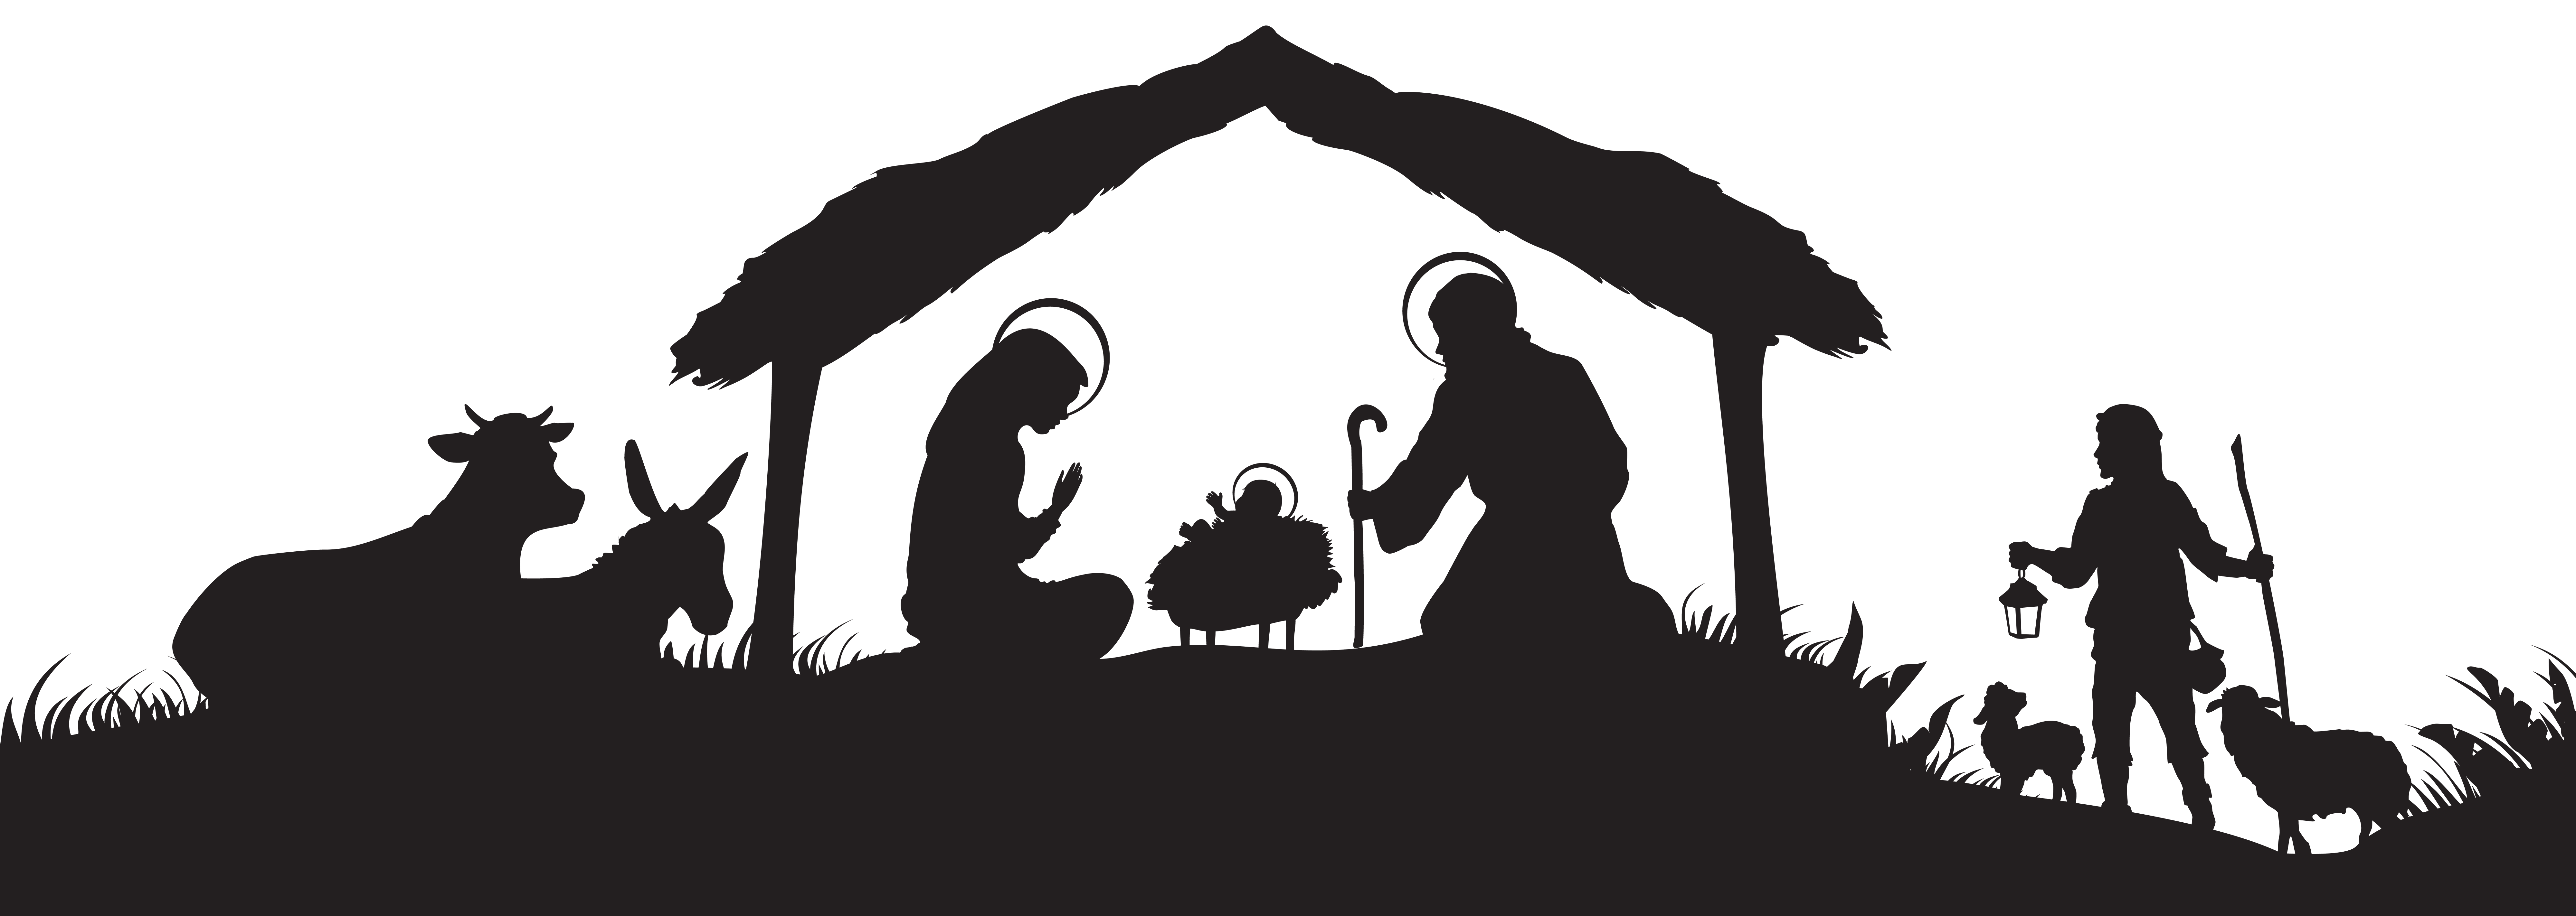 Nativity images free clipart svg download Christmas Nativity Scene Silhouette PNG Clip Art Image | Gallery ... svg download